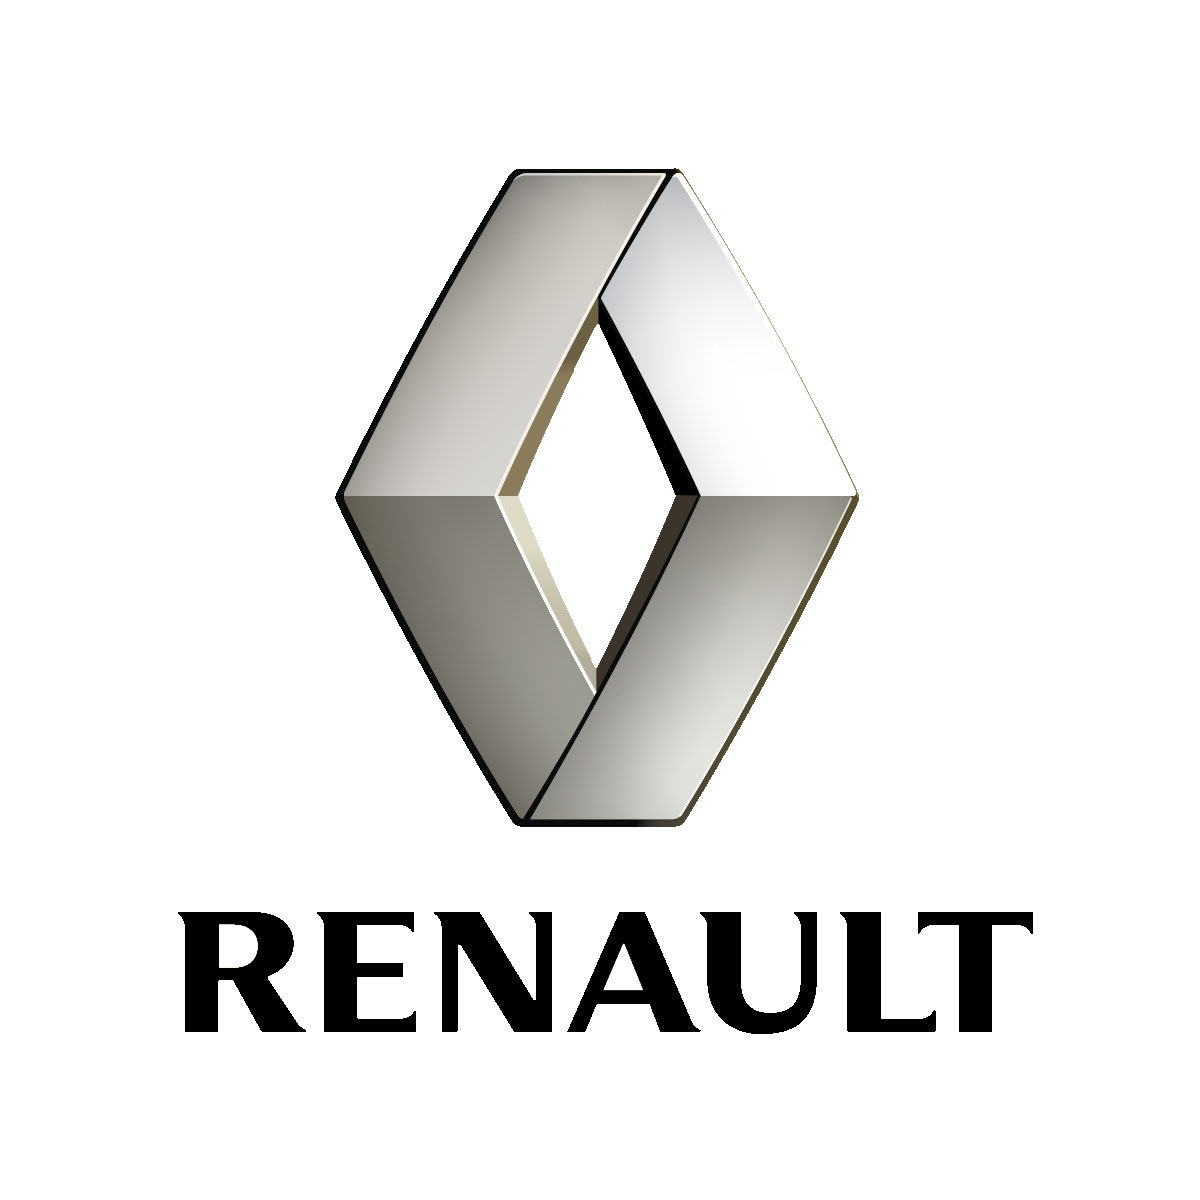 renault online dating The renault rs 2027  the incredibly sad world of niche dating  i've been lurking in the background of two different incredibly niche online dating services.